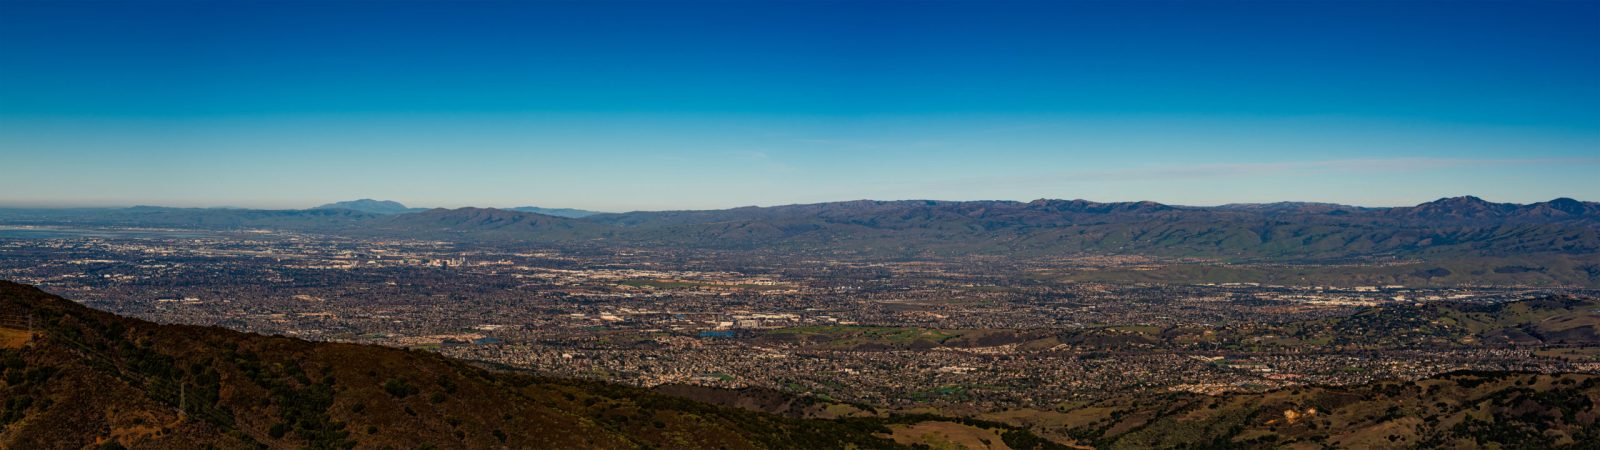 Silicon Valley from Mount Umunhum